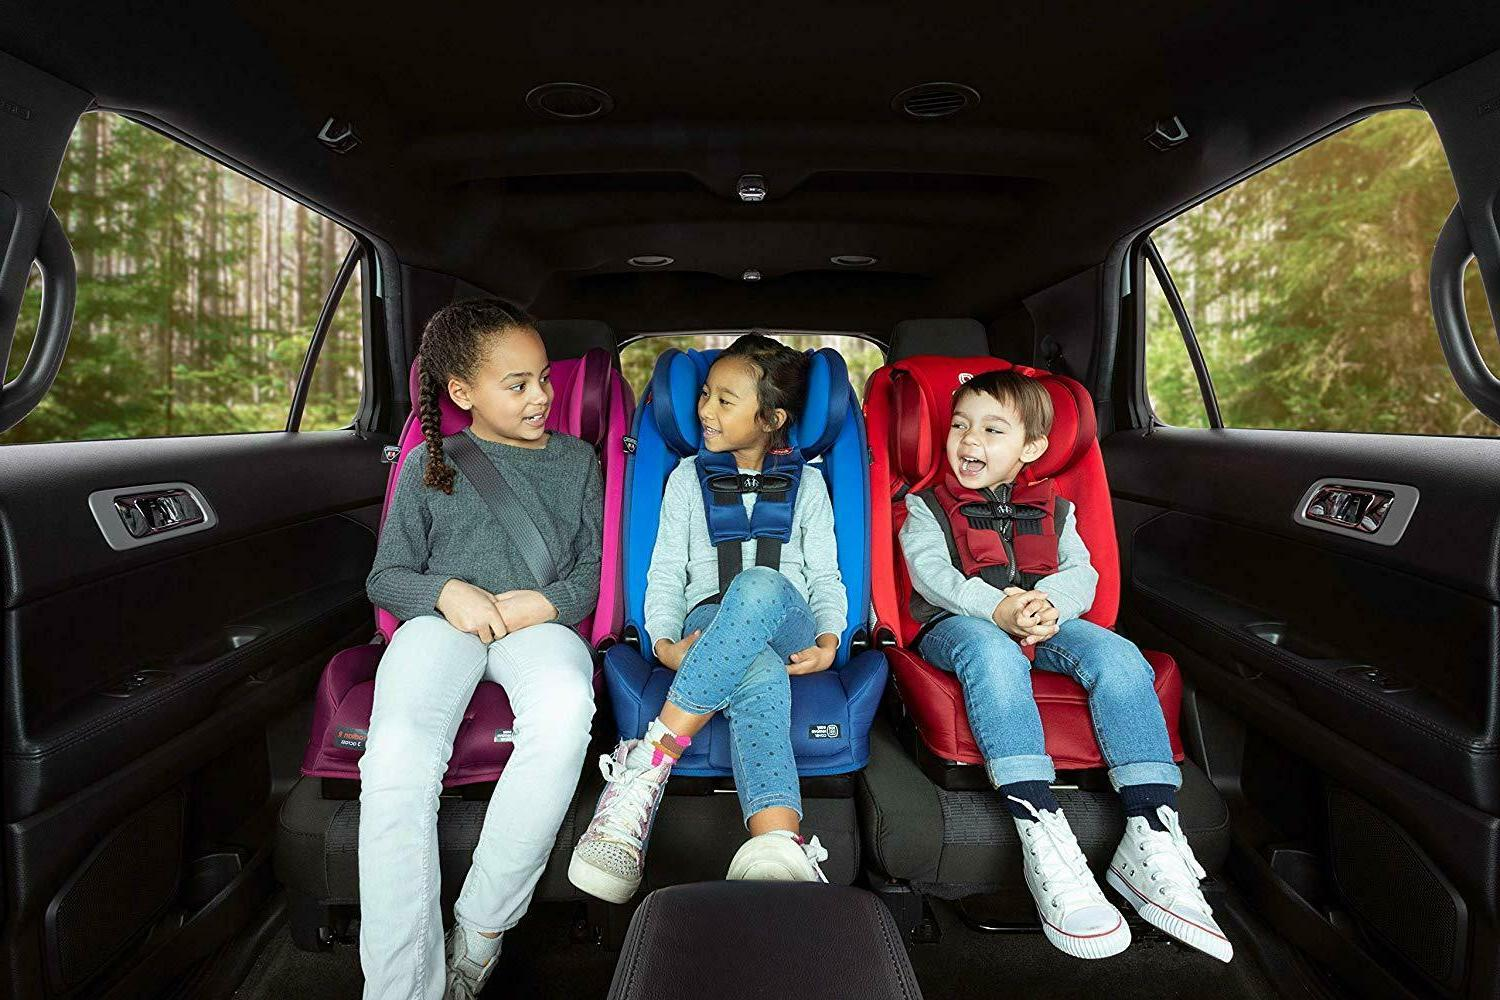 Diono RXT Car Seat in Cherry Shipping!